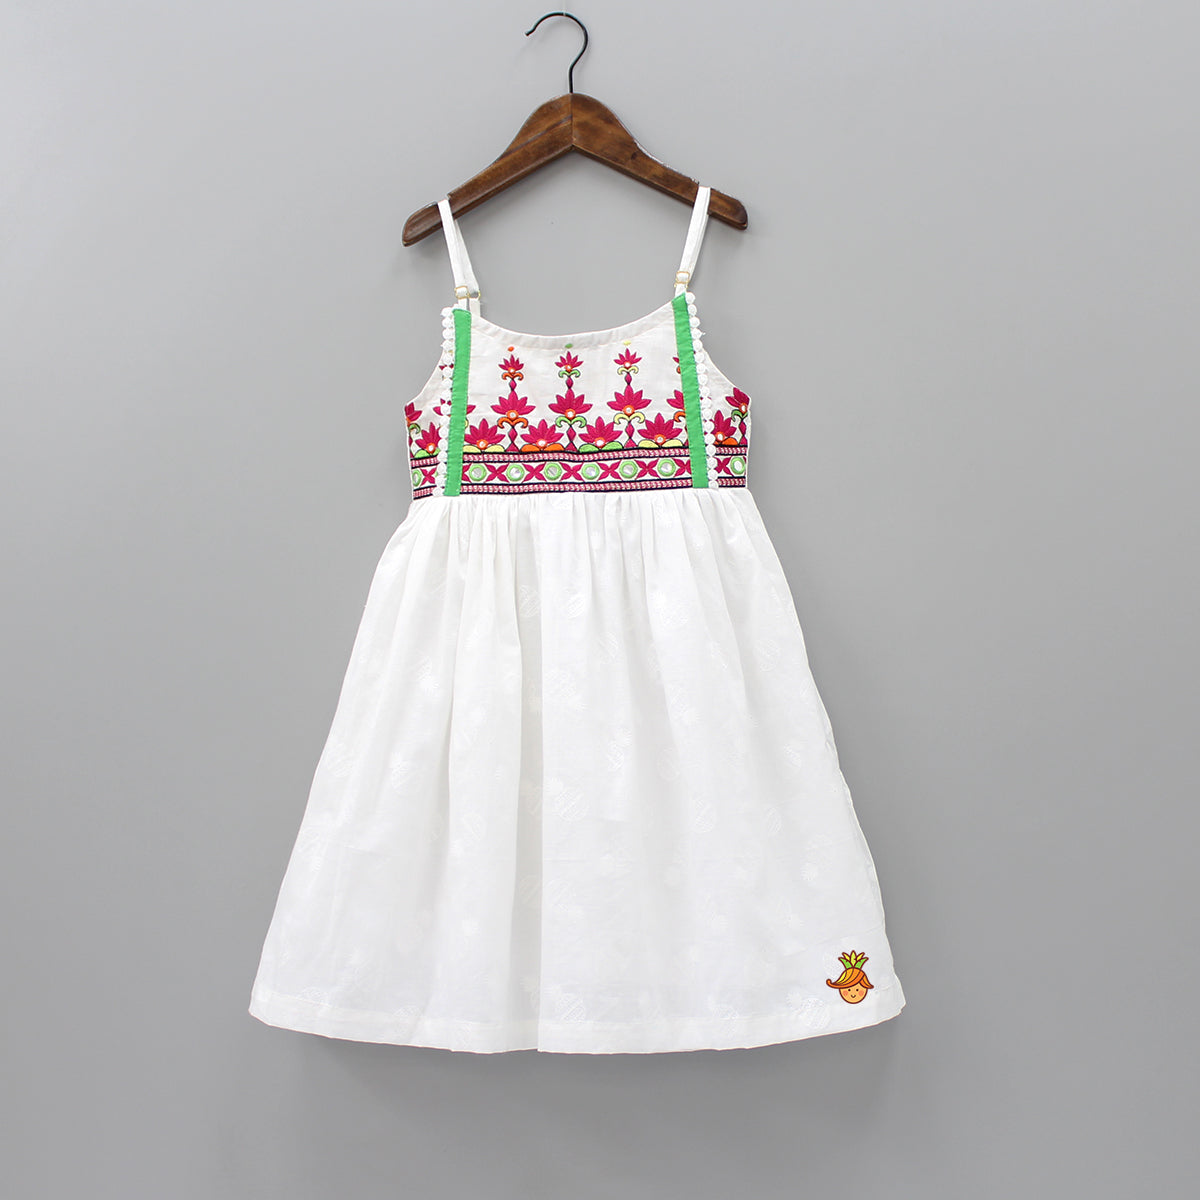 Pineapple Print Embroidered Dress